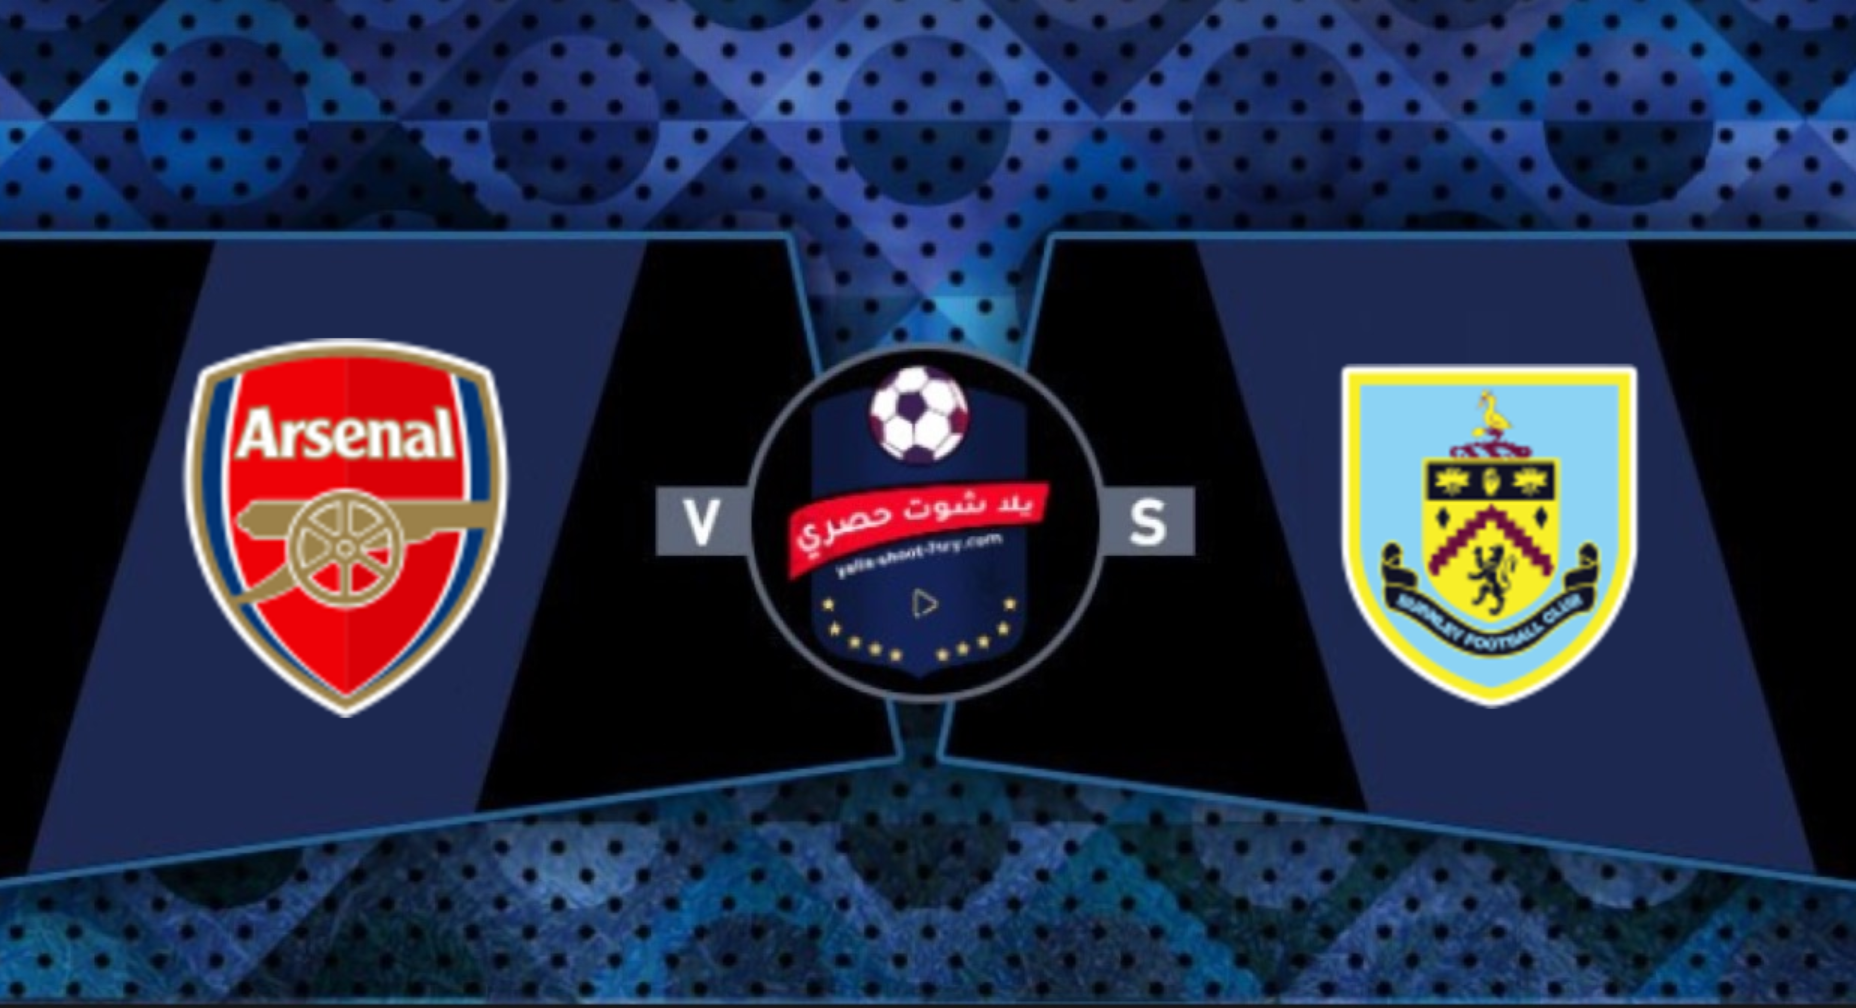 Watch the Arsenal and Burnley match